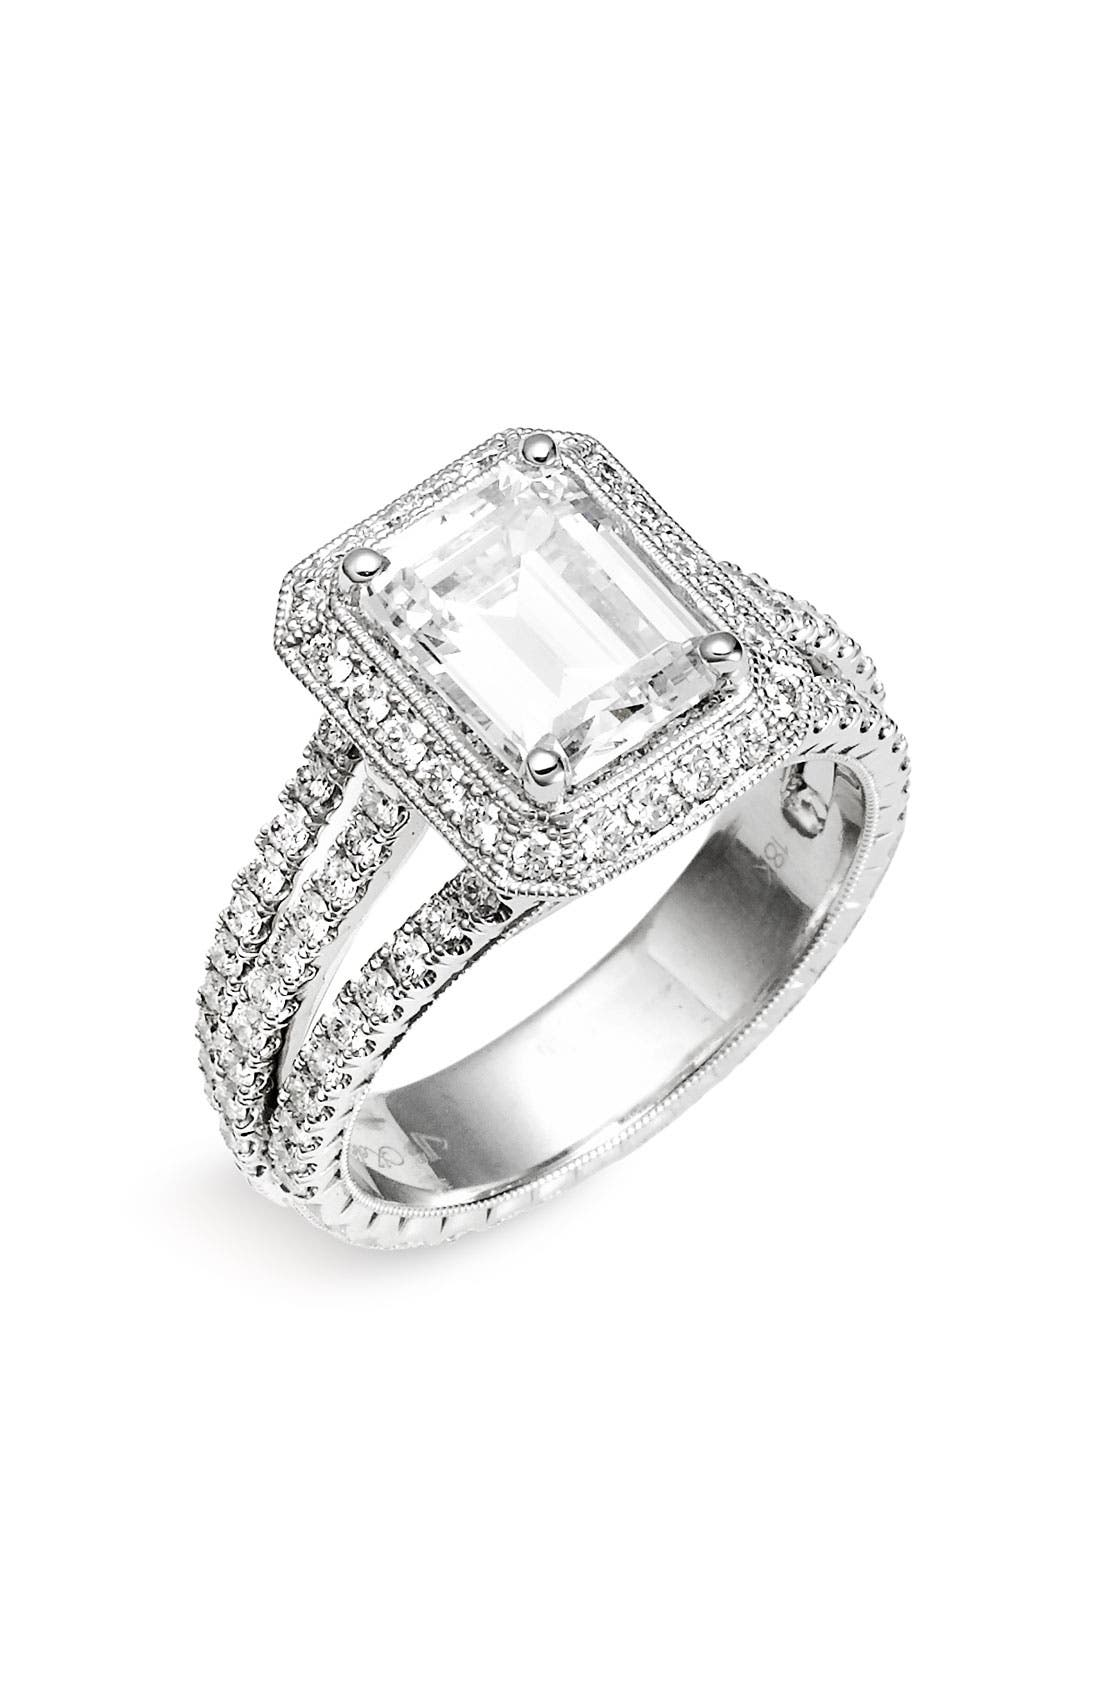 Alternate Image 1 Selected - Jack Kelége 'Romance' Emerald Cut Diamond Engagement Ring Setting